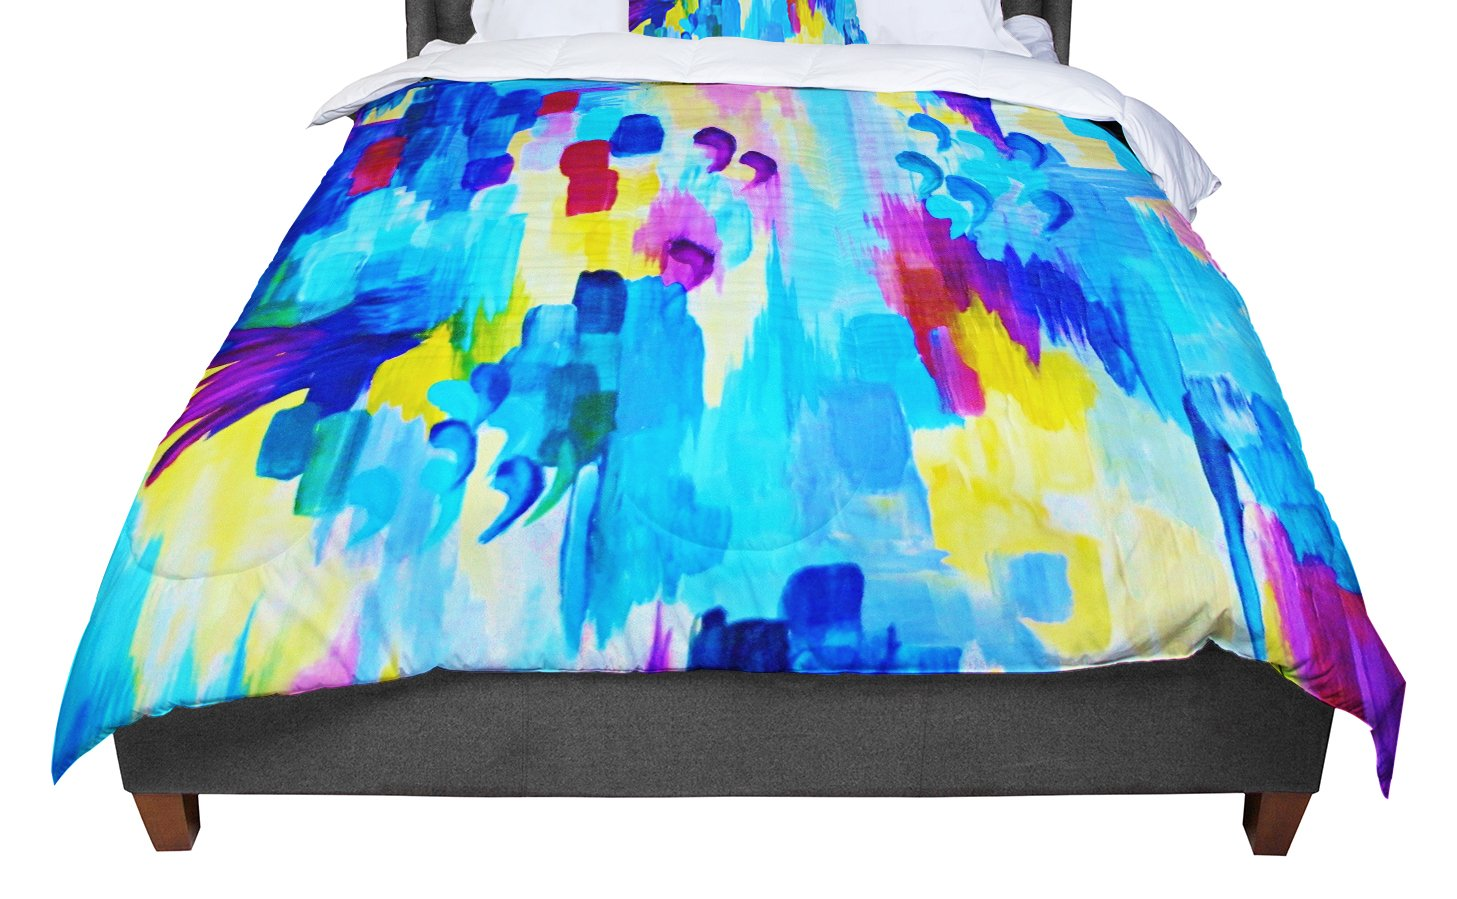 KESS InHouse Ebi Emporium 'Don't Quote Me, Revisited' Queen Comforter, 88' X 88'